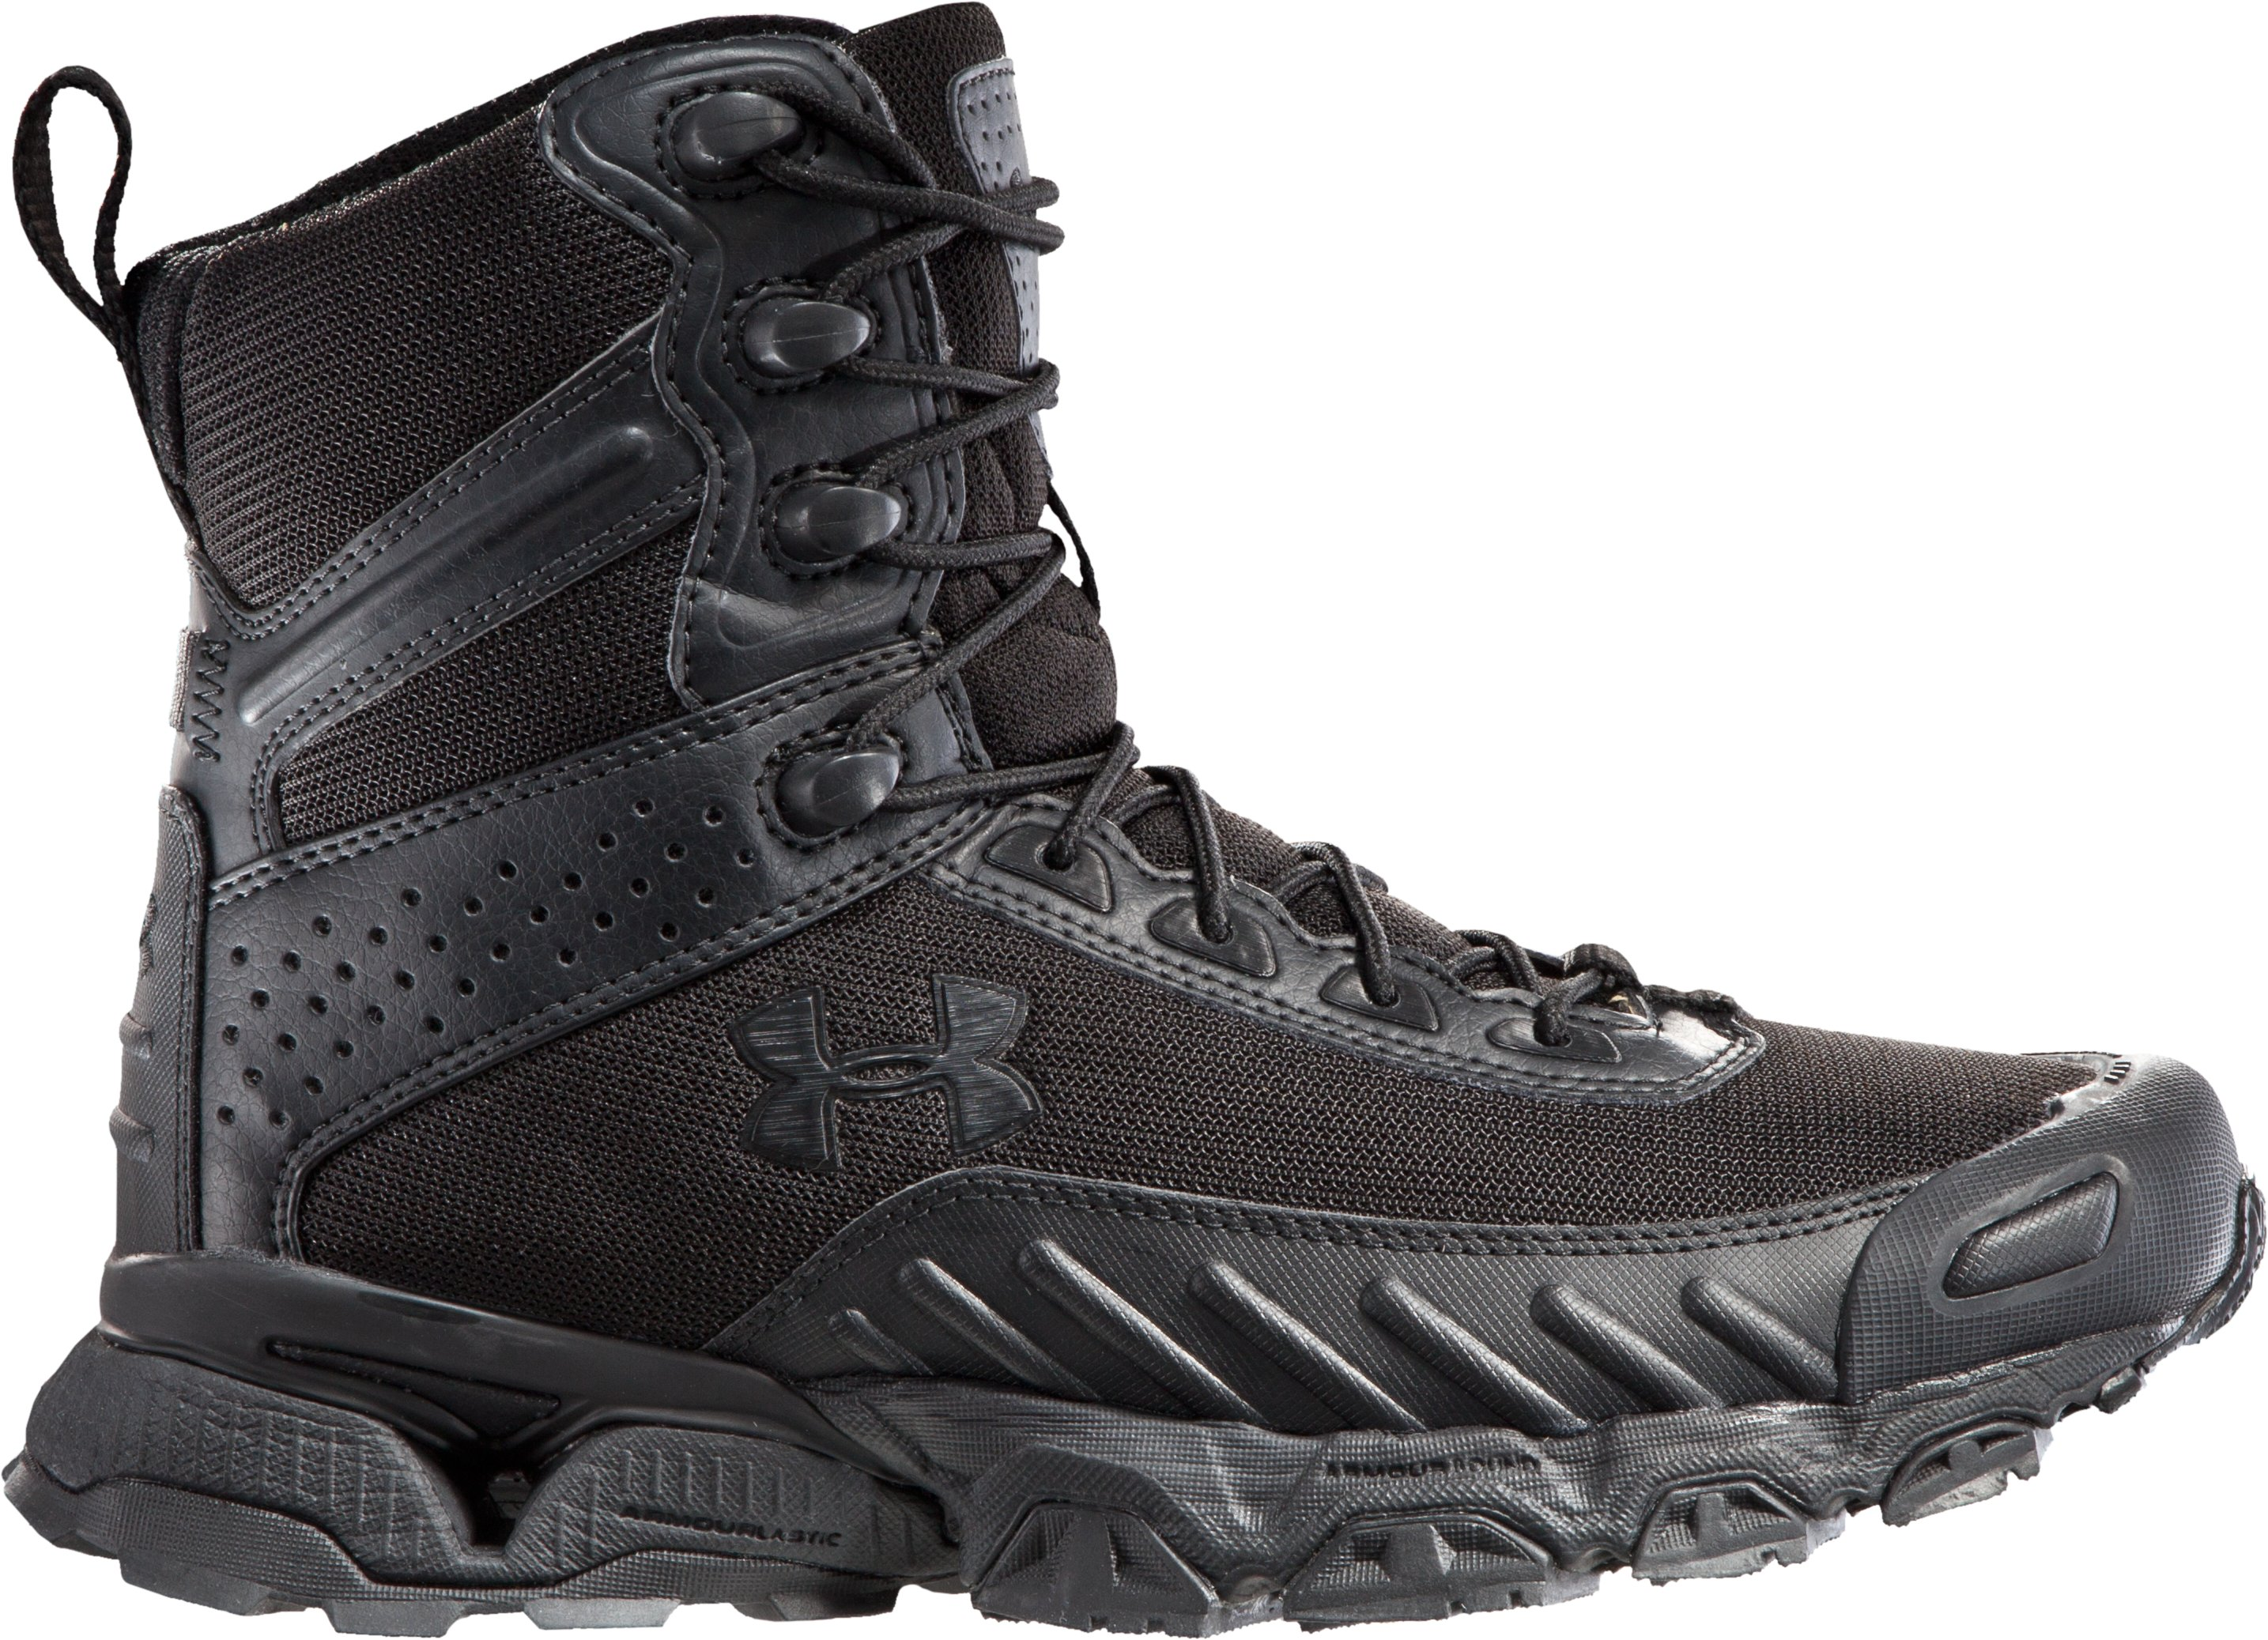 Women's Valsetz Boots, Black